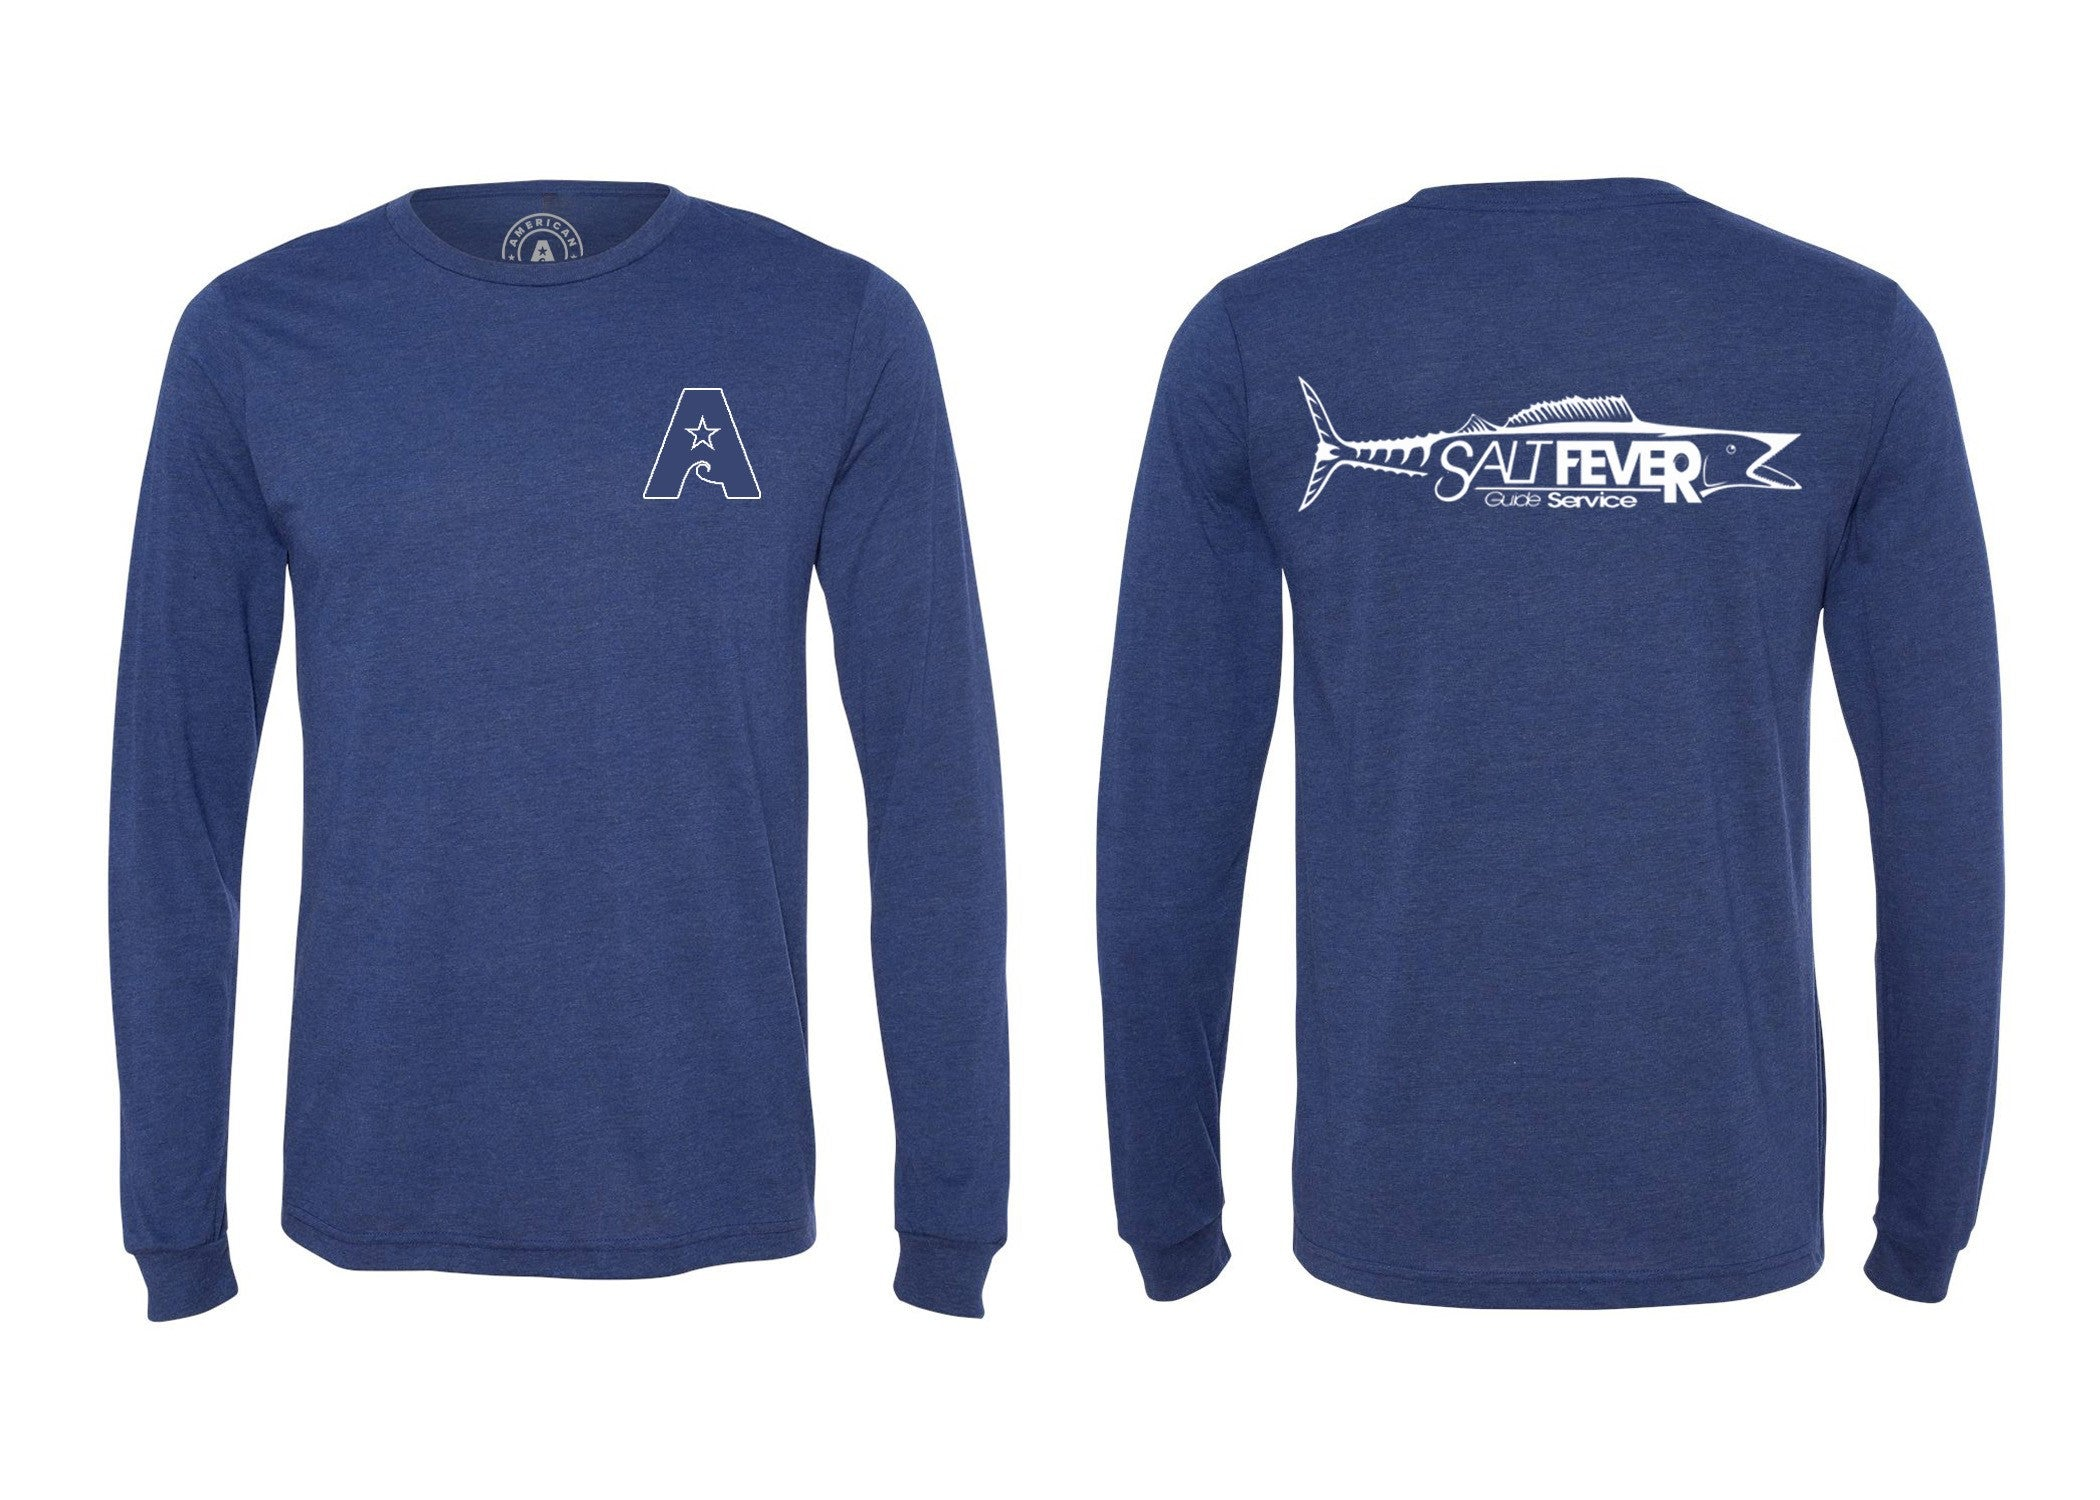 Salt Fever Long Sleeve Tee